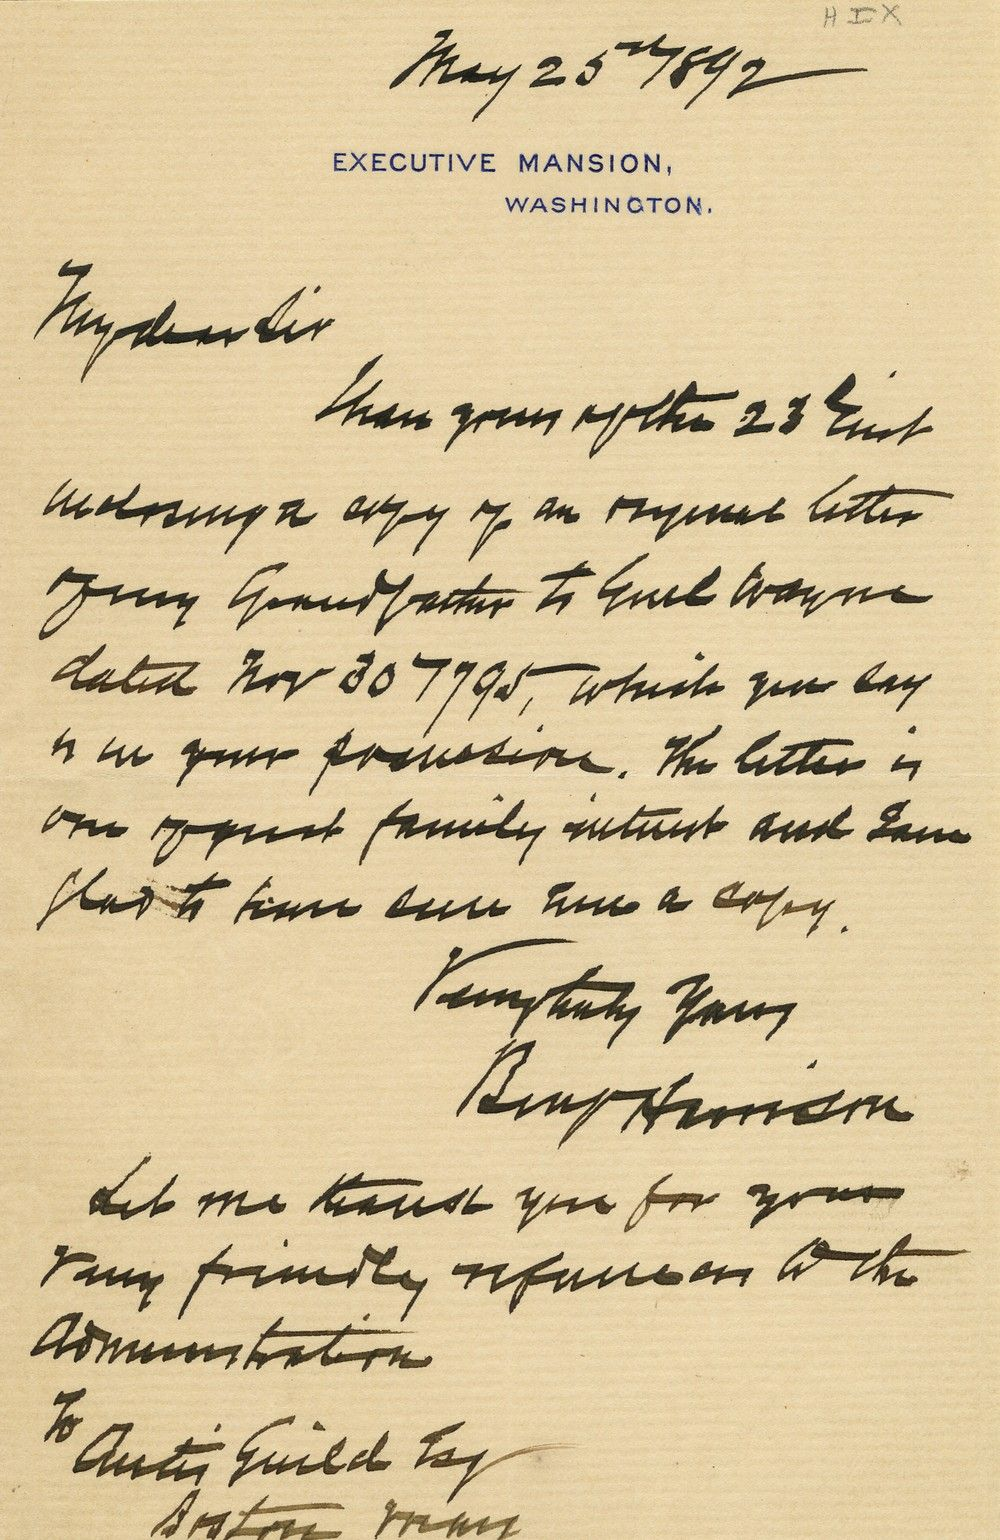 President Benjamin Harrison Discusses a Letter Written by his Grandfather, William Henry Harrison